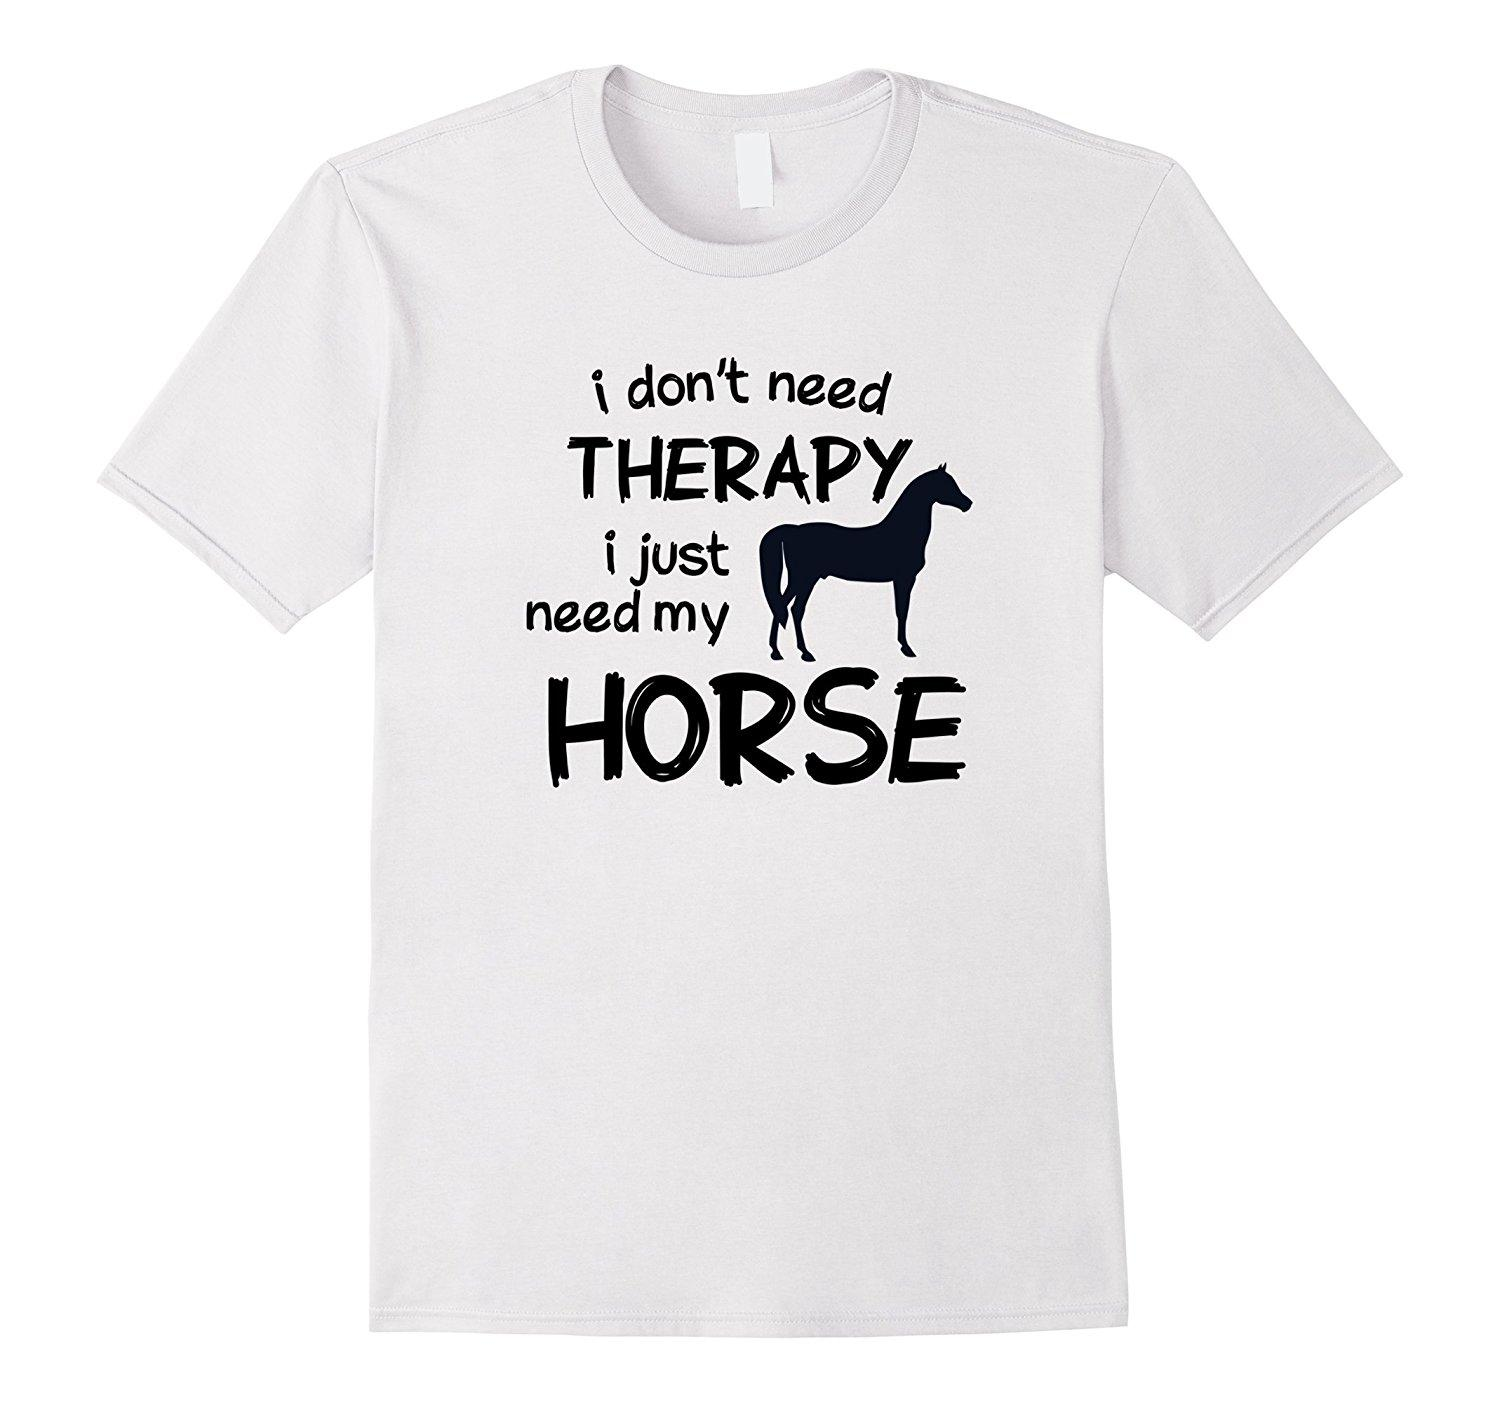 4839b5256b4 Horse Riding T Shirt I Dont Need Therapy I Just Ride T Shirt Summer Style  Funny T Shirt Short Sleeve Tops Tee Plus Size Crazy T Shirt T Shir From  Conbostore ...